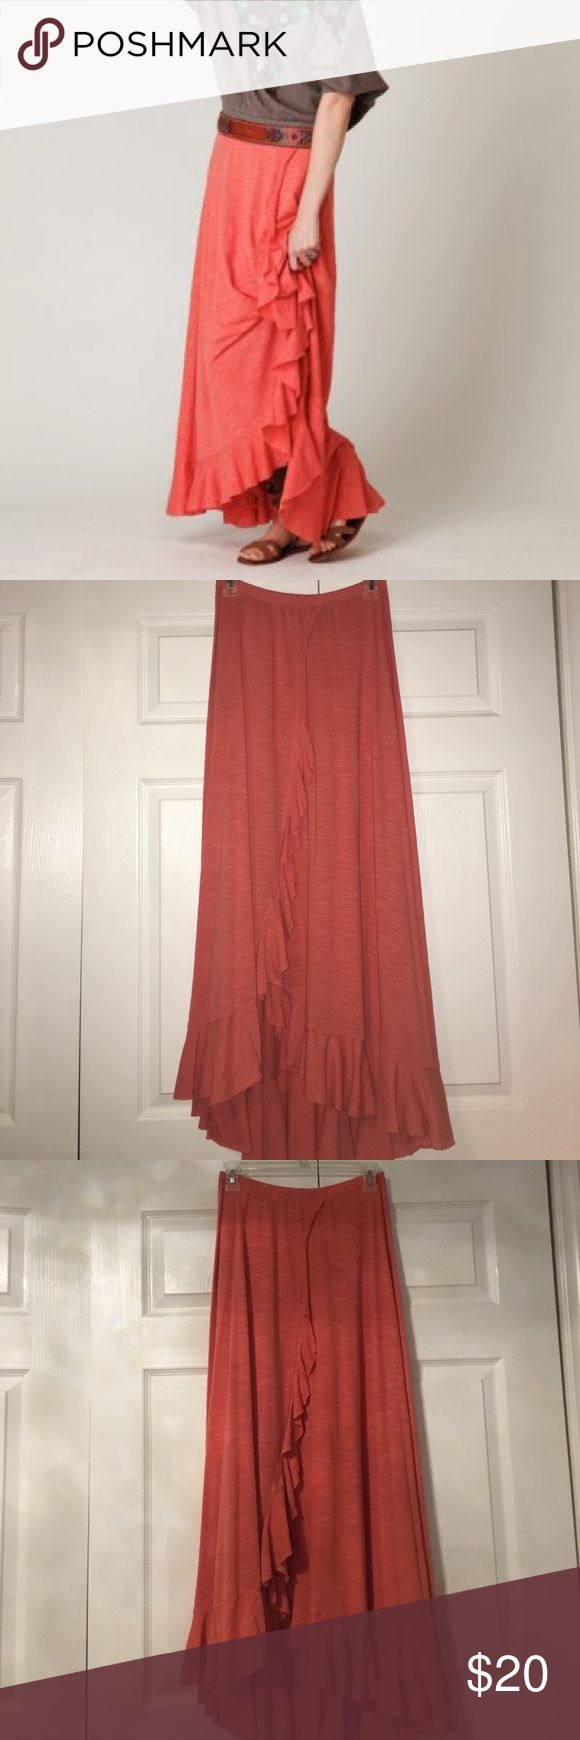 Free People Beach coral maxi skirt FP Beach coral maxi skirt. Pre owned but in good condition. Size XS. Coral color shorter in front and longer back. Ruffles on the front very pretty. Free People Skirts Maxi